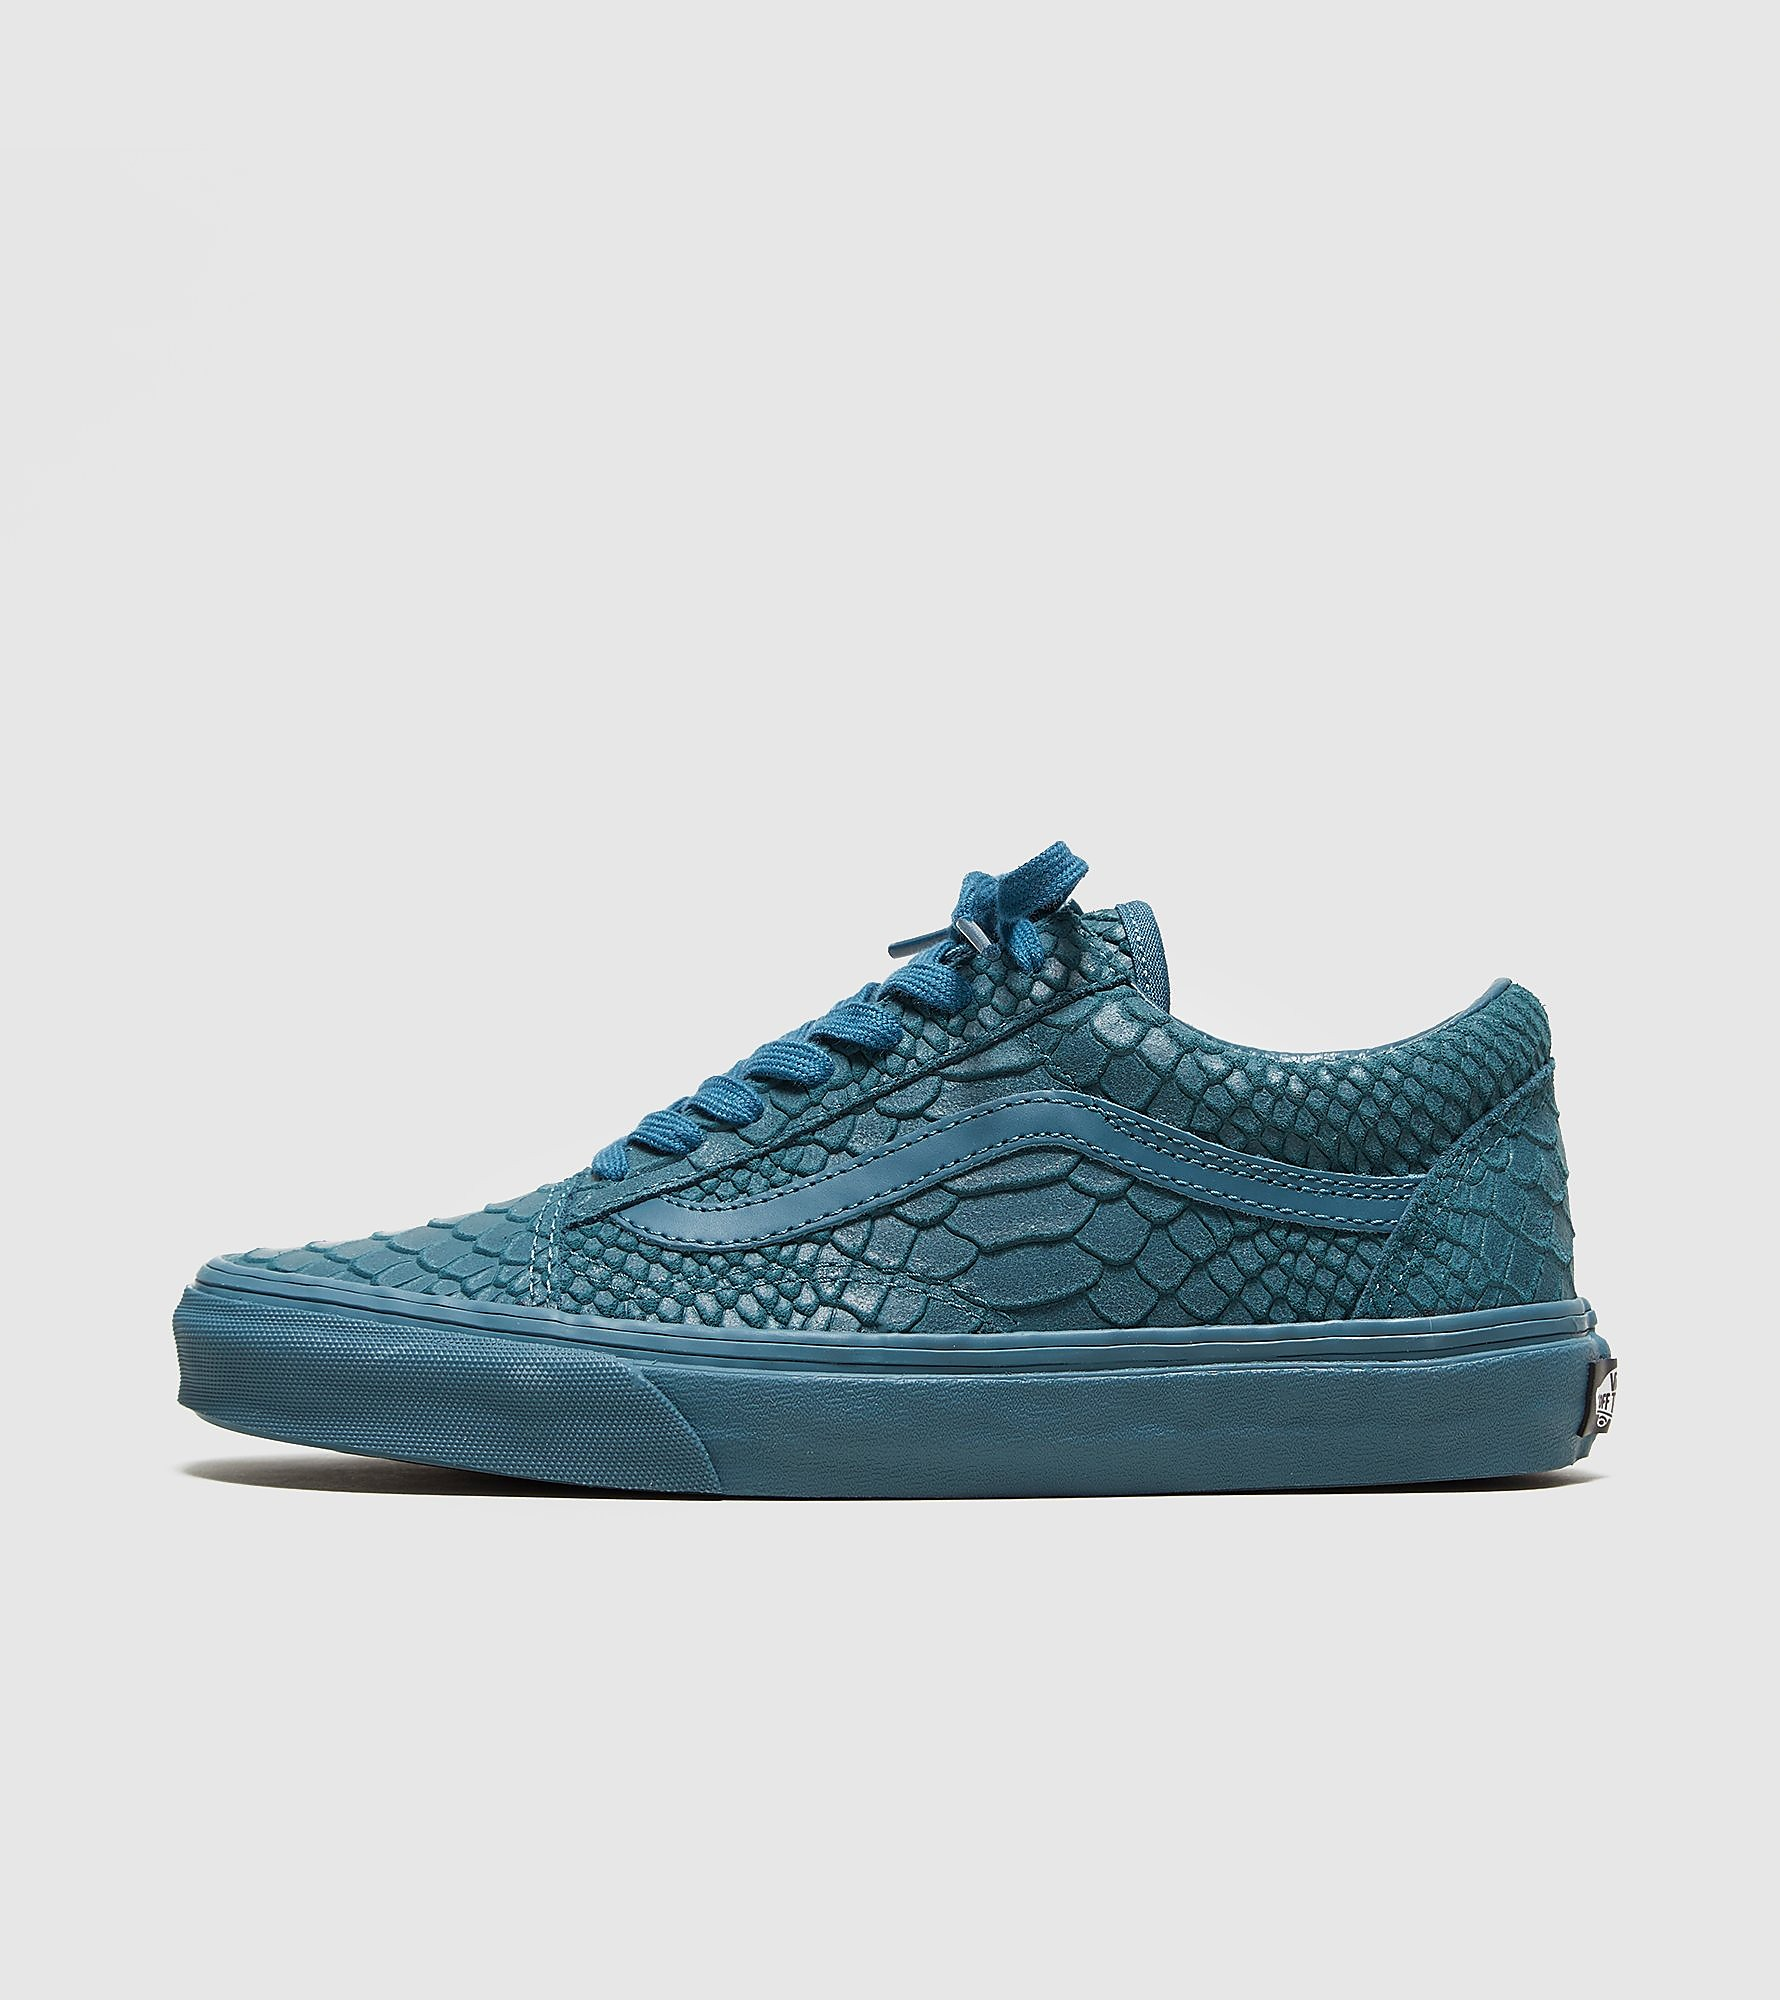 Vans Old Skool DX Mono Women's